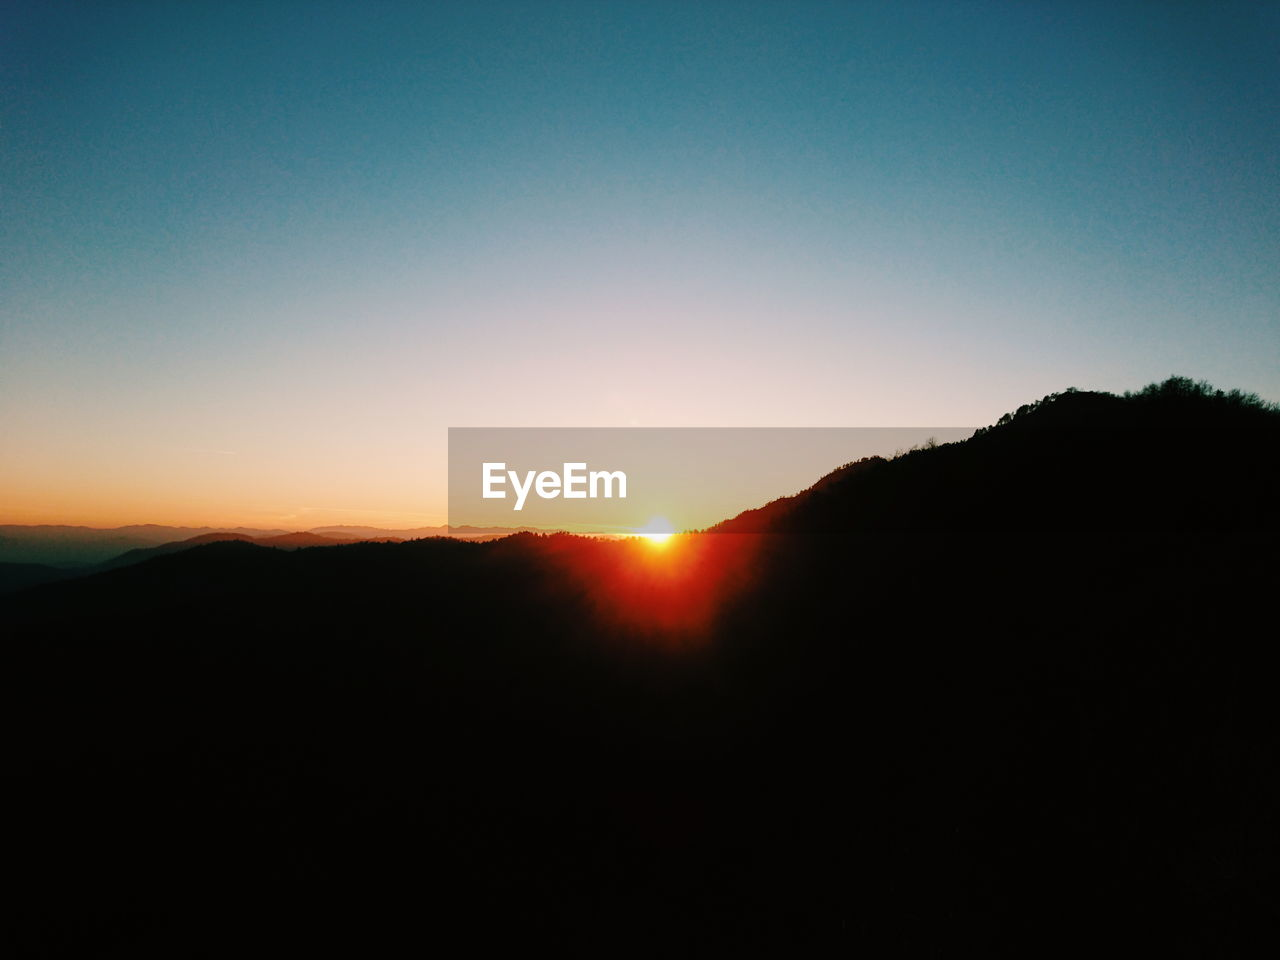 silhouette, sunset, nature, clear sky, landscape, copy space, sun, tranquil scene, mountain, tranquility, beauty in nature, scenics, sunlight, no people, sky, outdoors